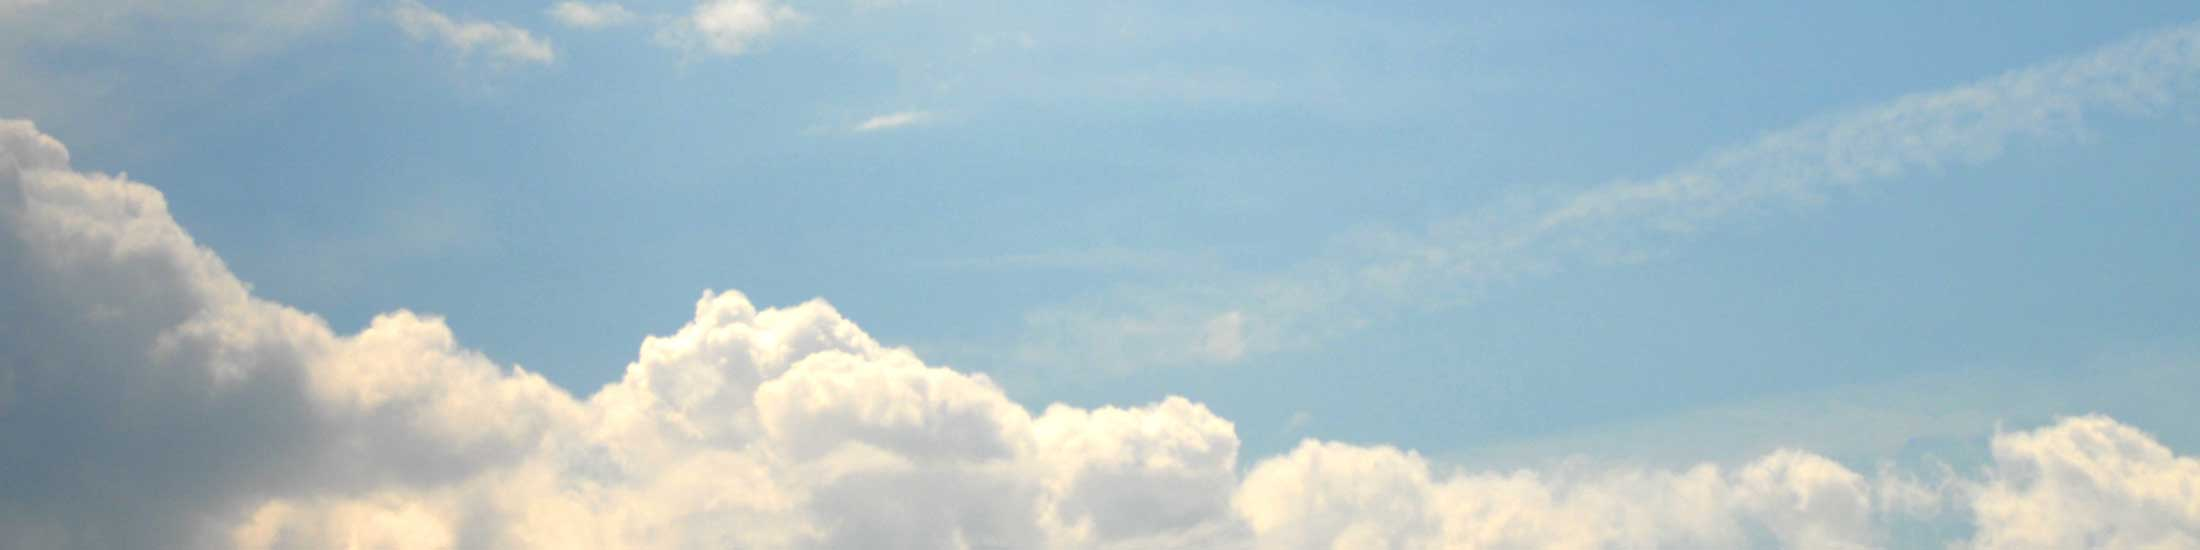 banner image of a blue sky with clouds